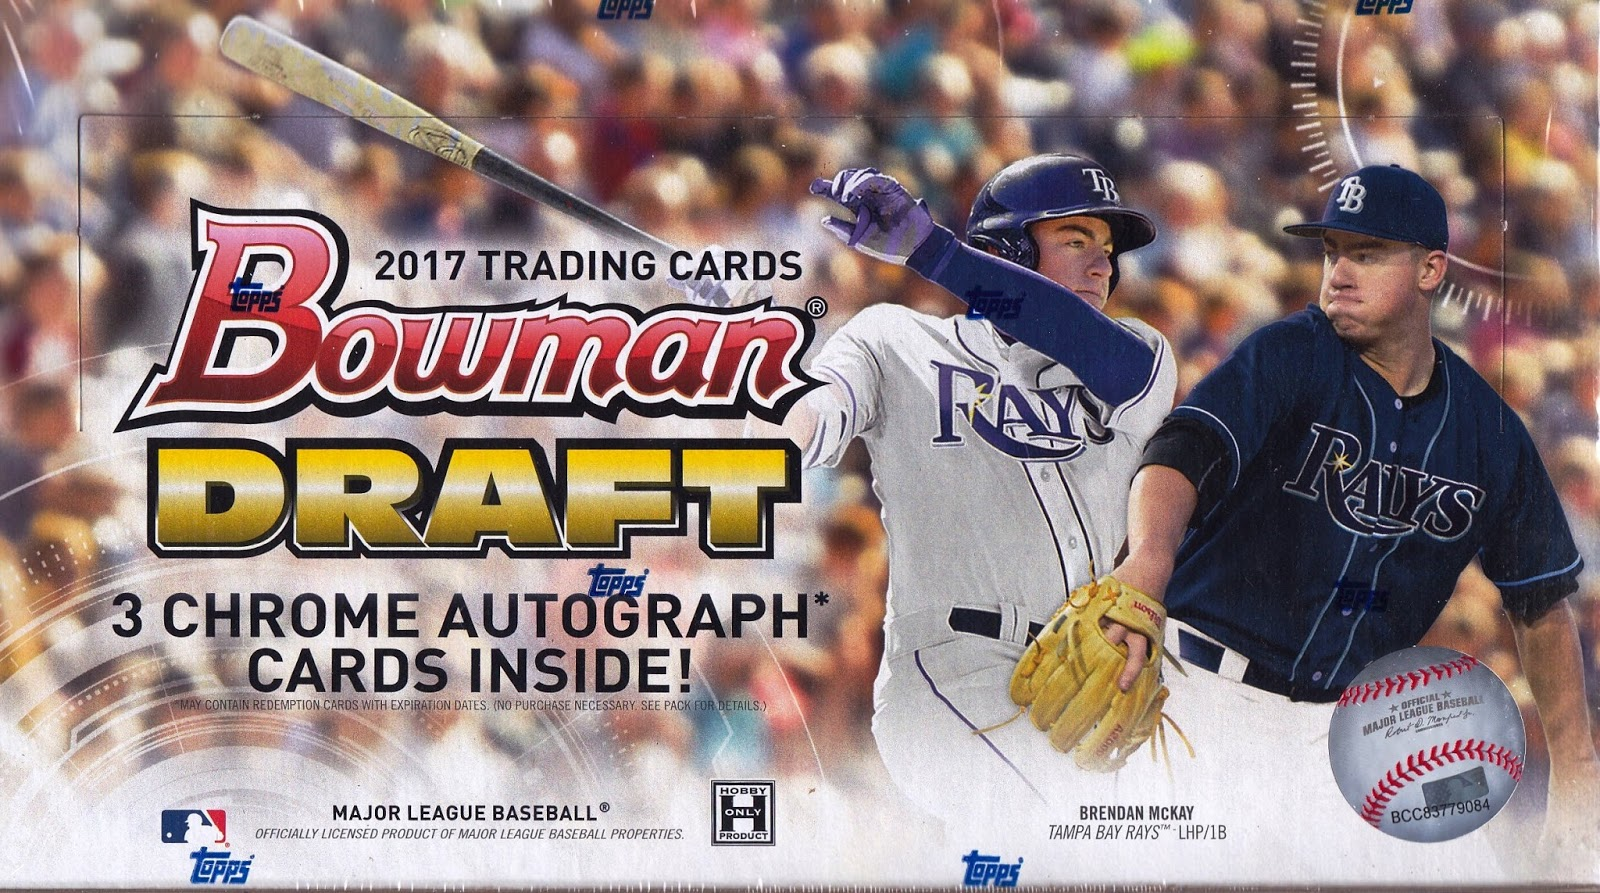 2017 Bowman Draft Review A Fresh Look At The 2017 Mlb Draft Class